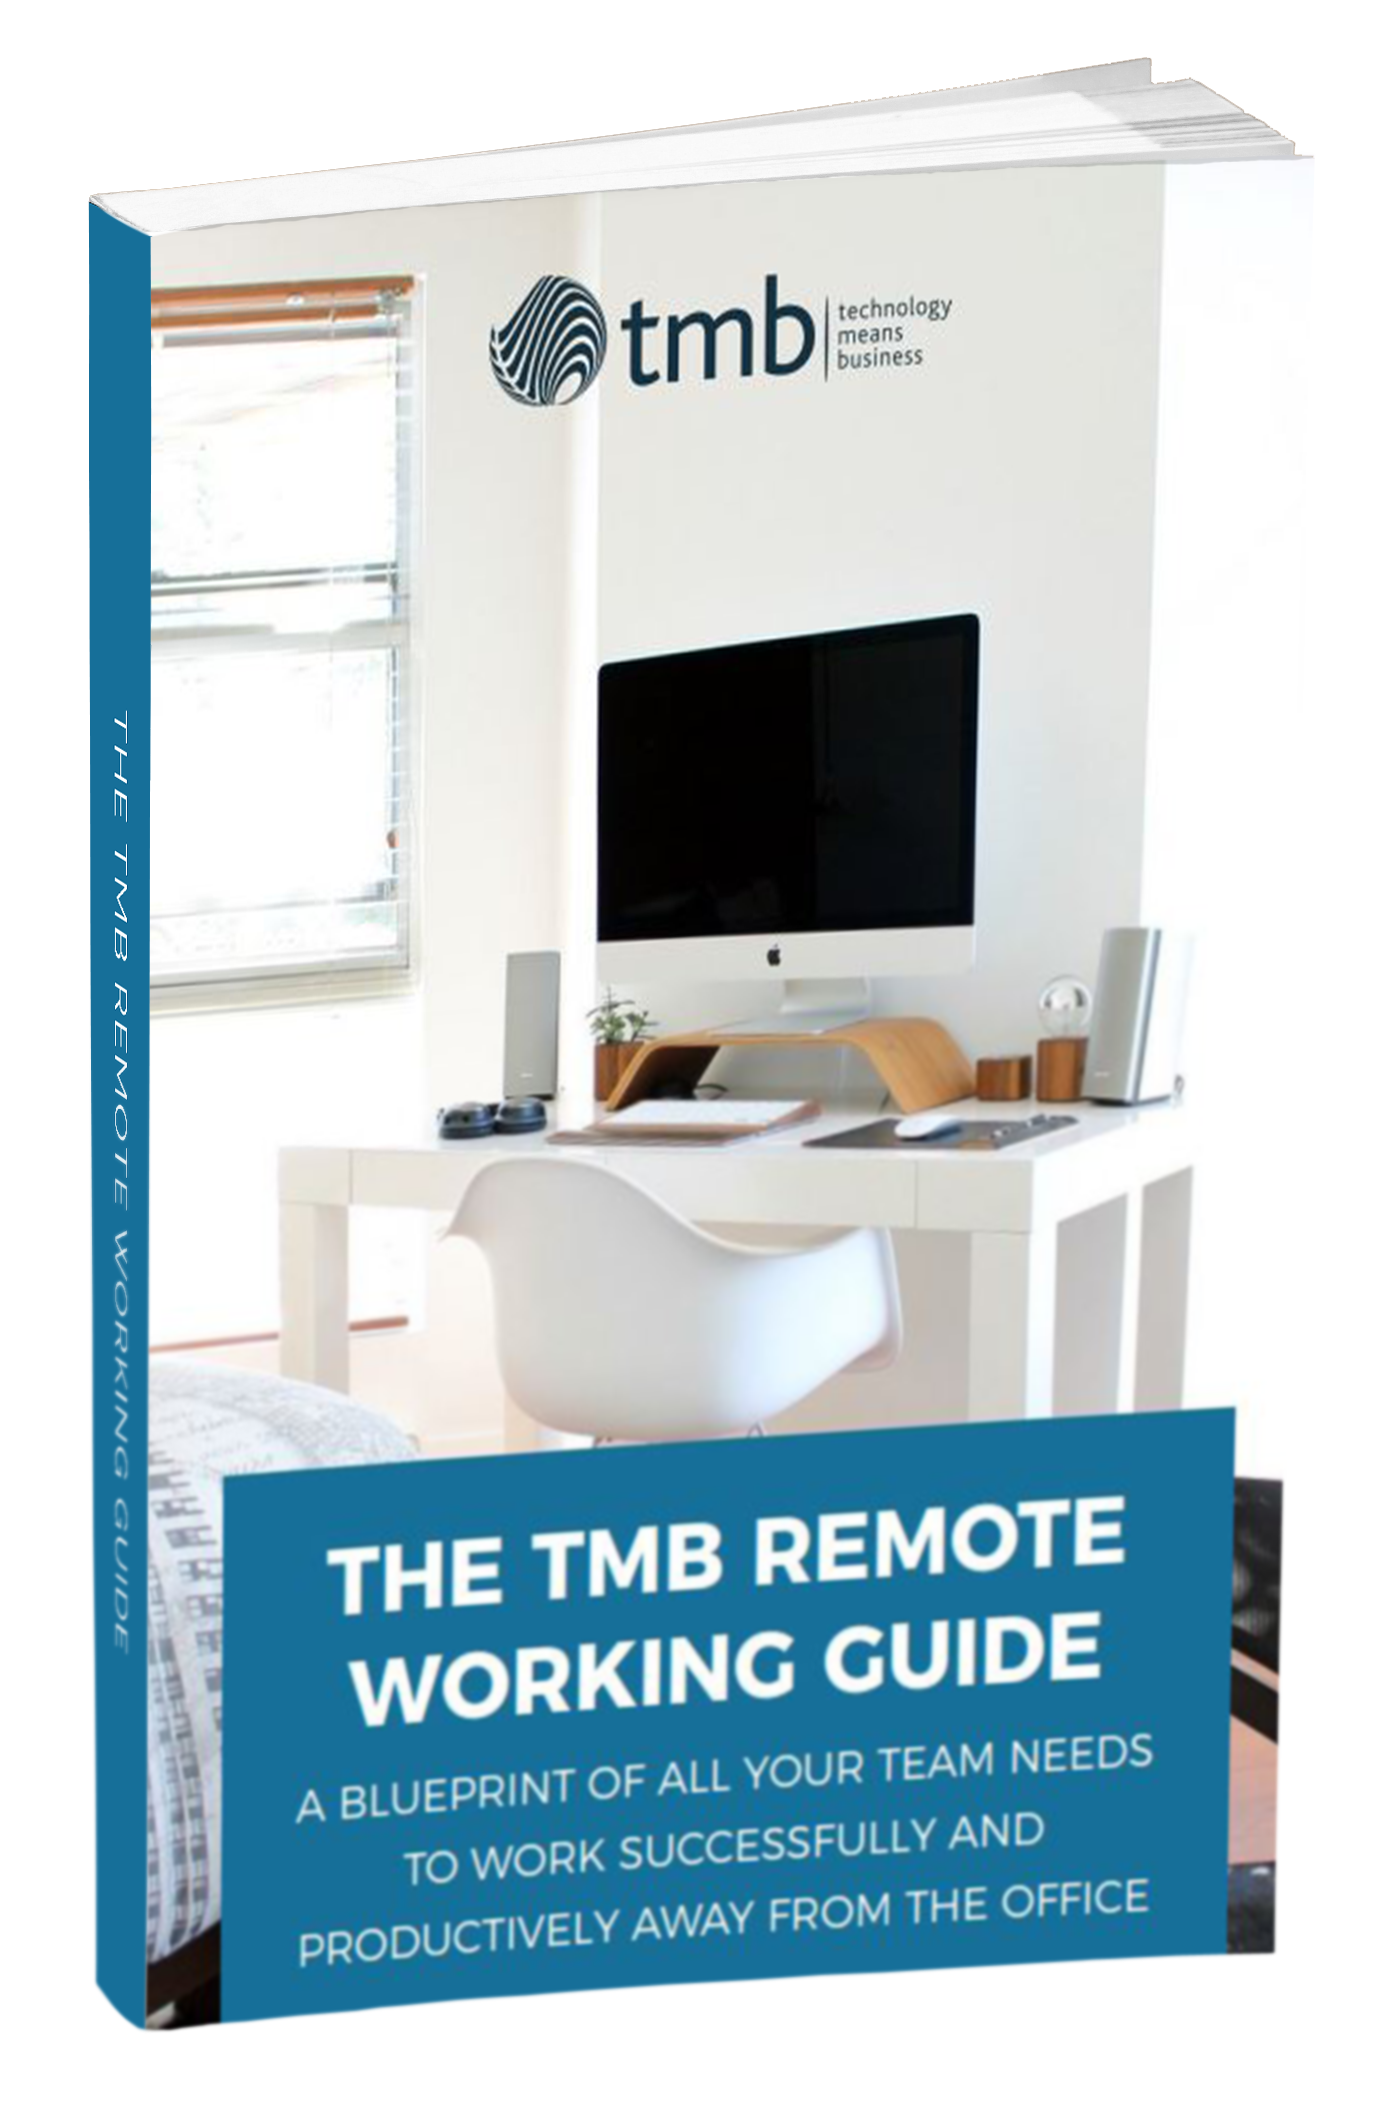 tmb-remote-working-guide